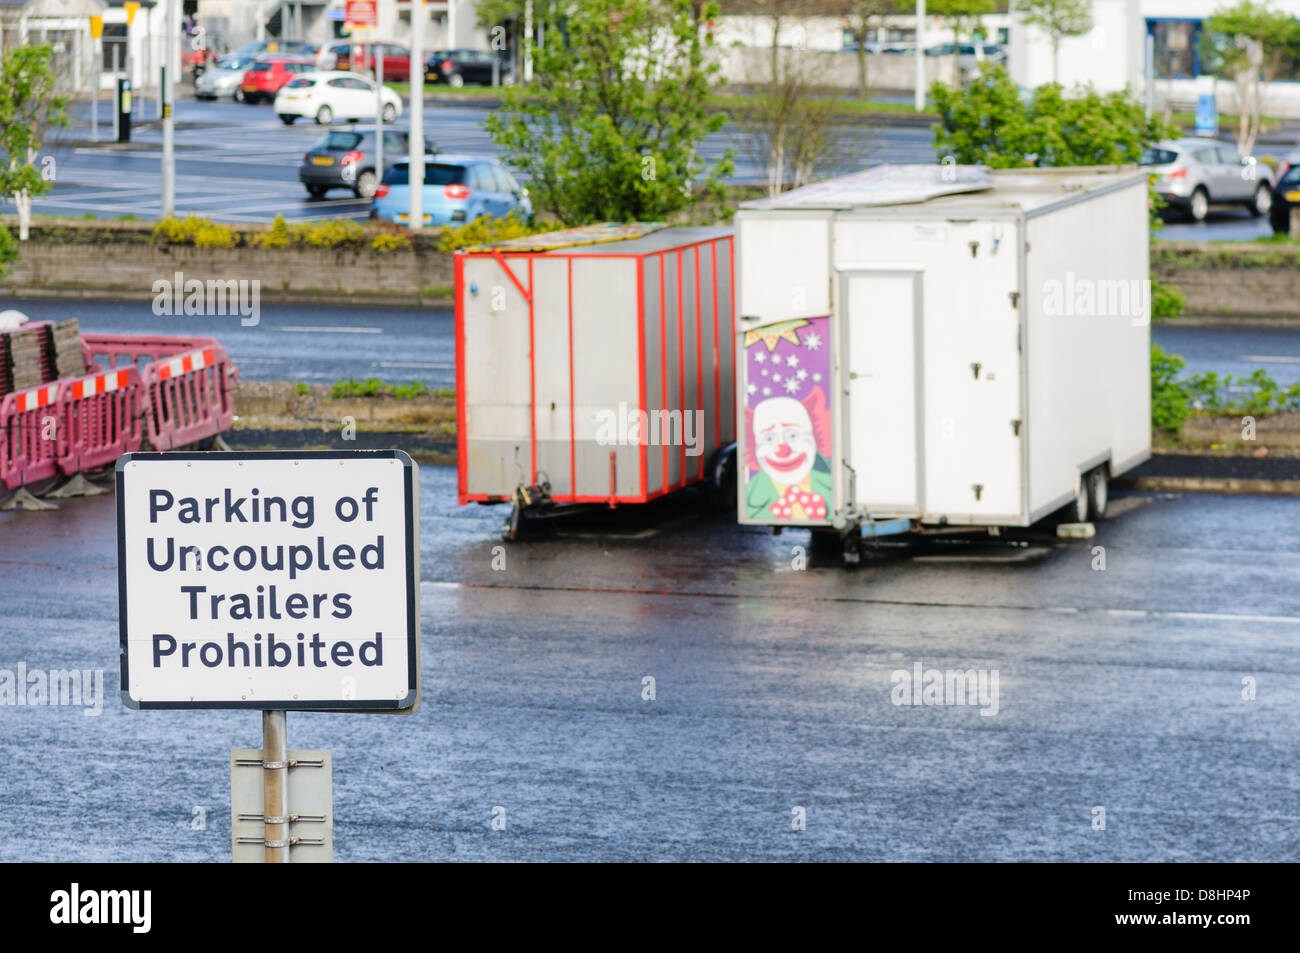 Sign in a car park forbidding parking of uncoupled trailers, with trailers in the background - Stock Image